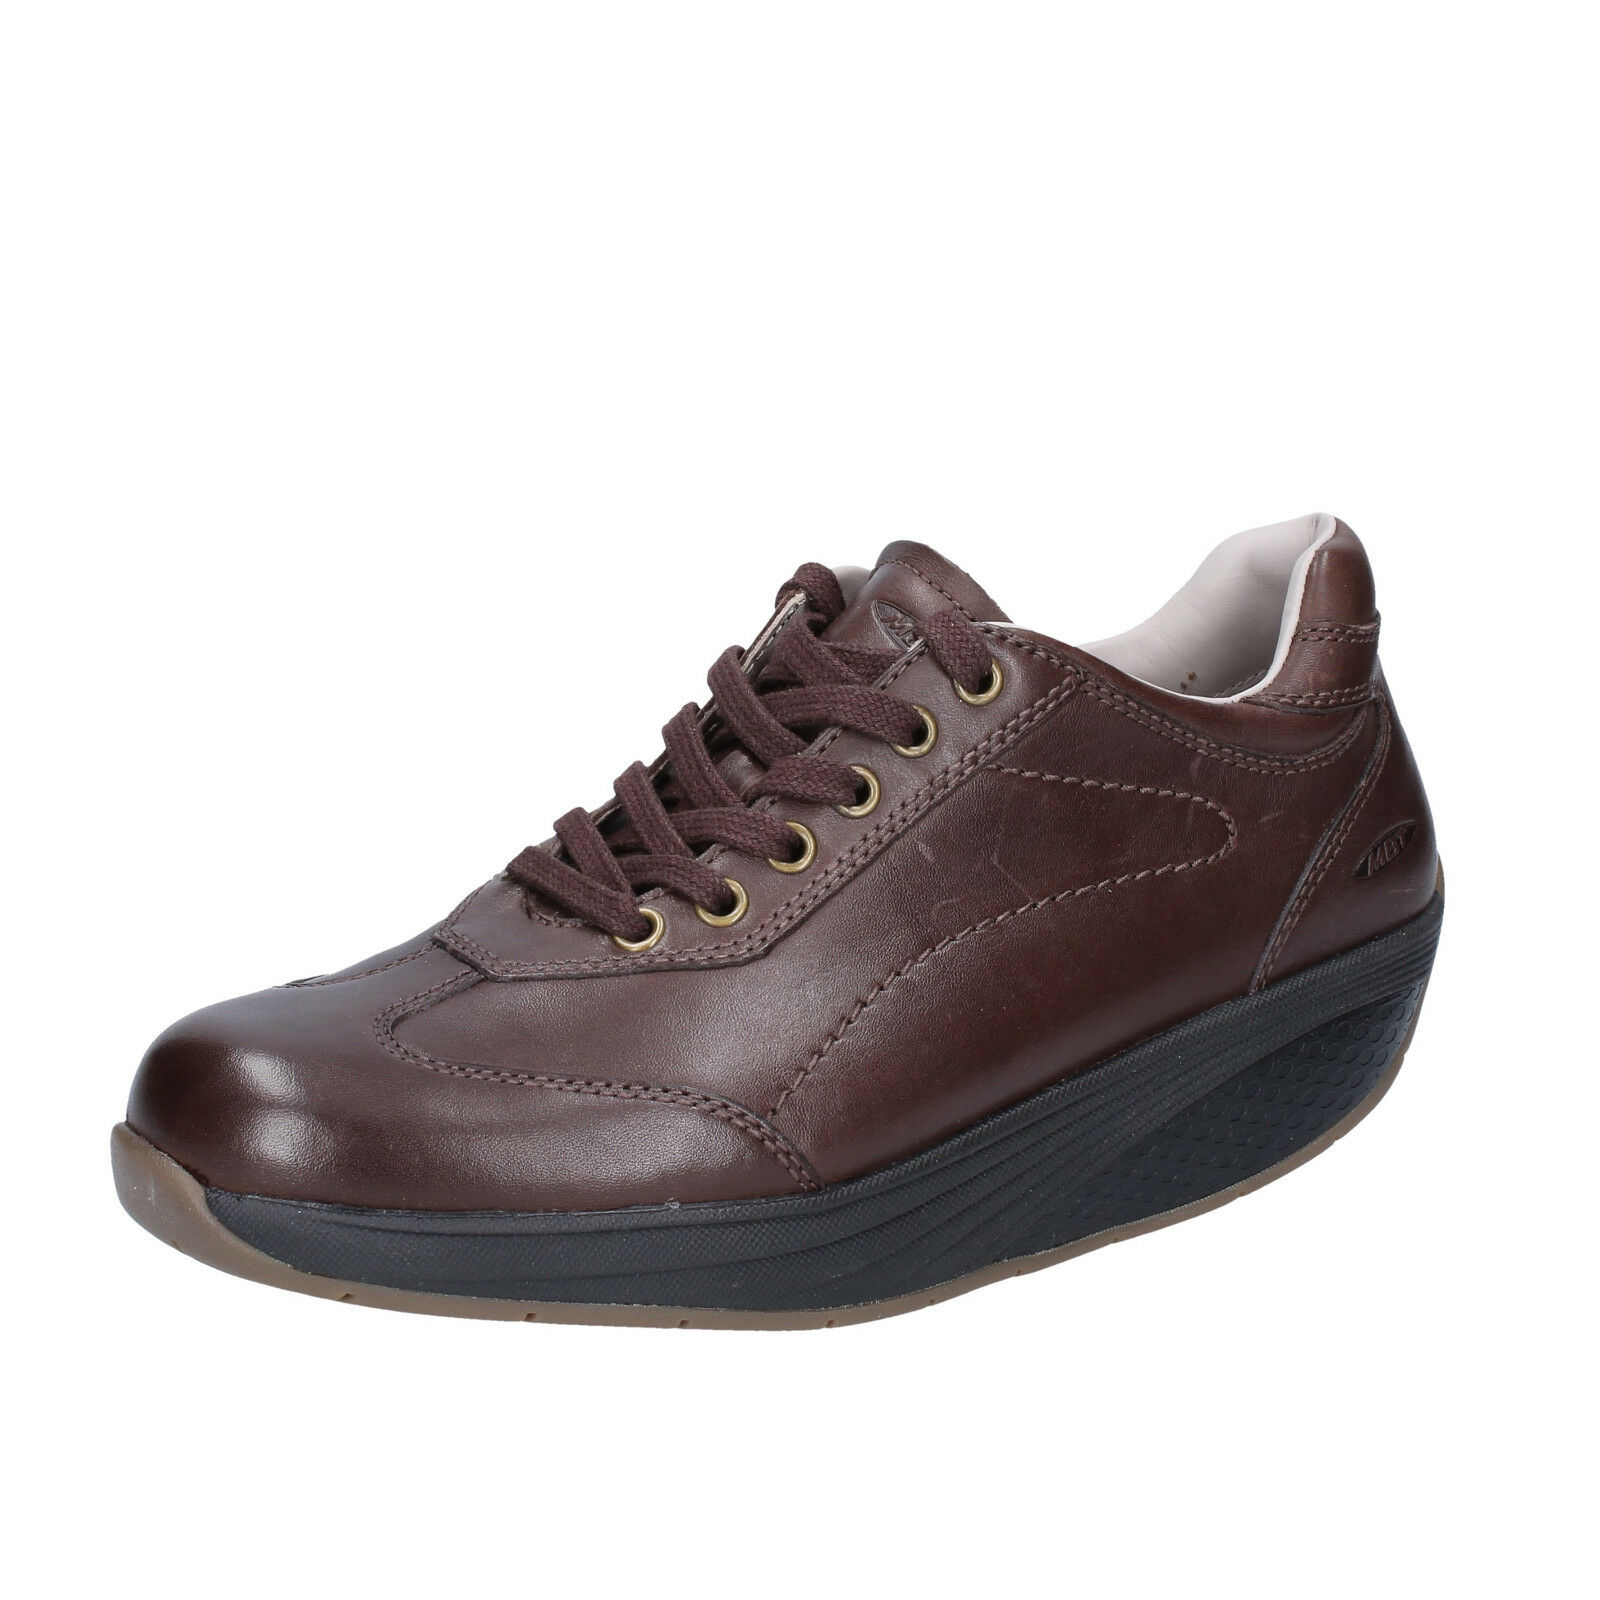 women's shoes MBT 9 / 9,5 () sneakers brown leather performance BT62-40